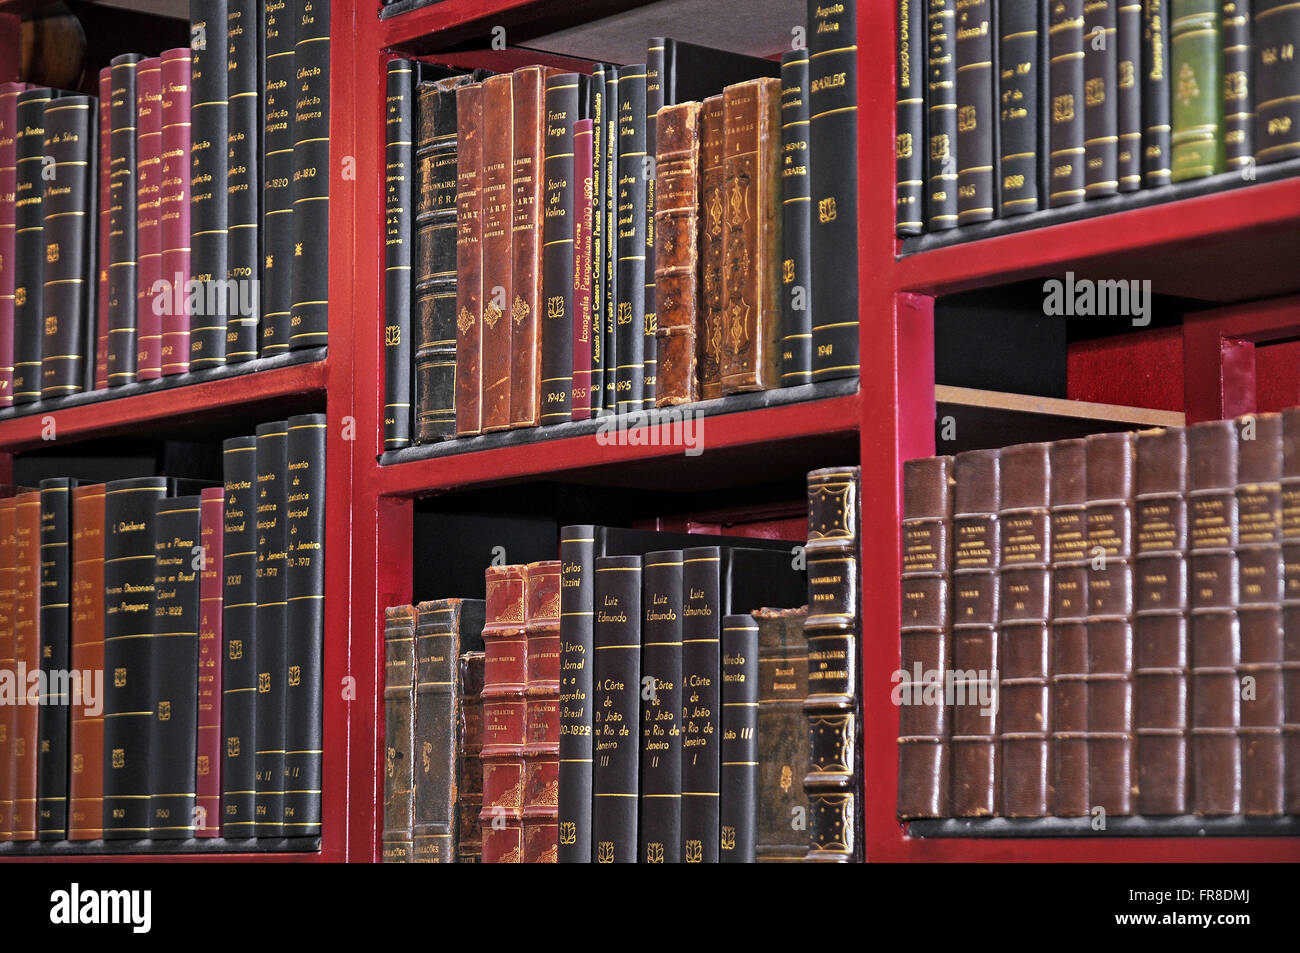 Detail of a library bookshelf - Stock Image